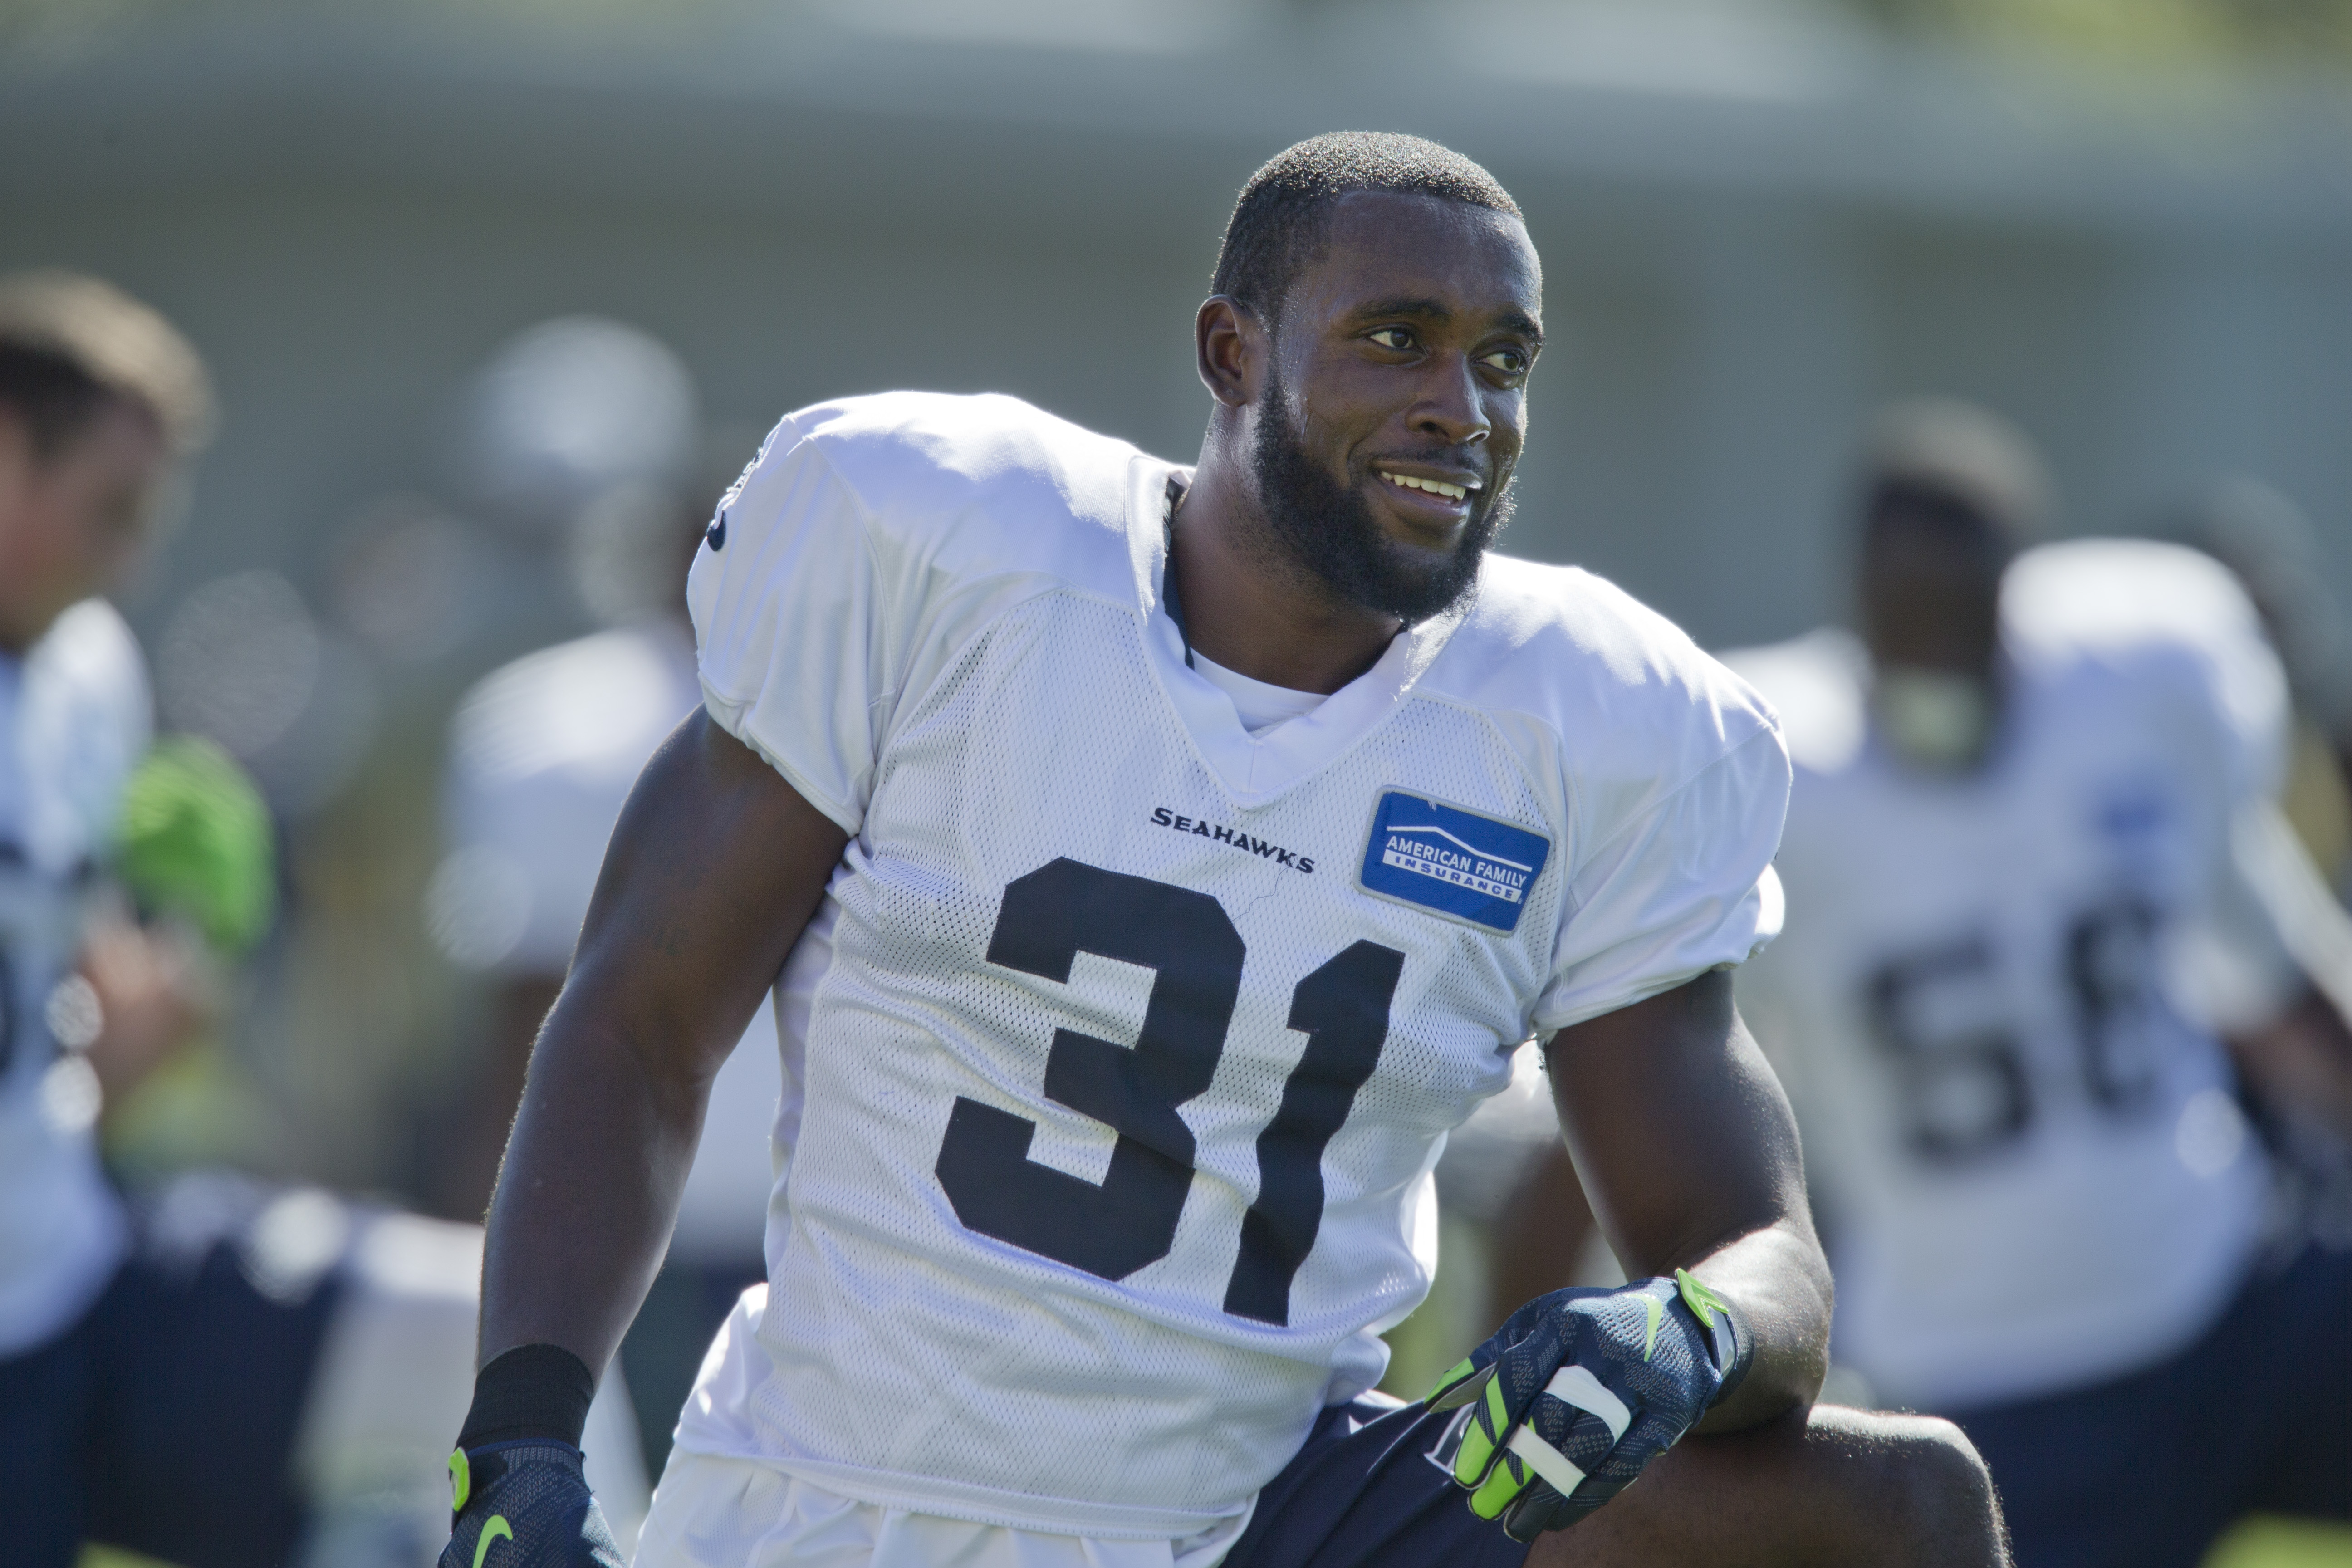 Seattle Seahawks Kam Chancellor in rare form says Pete Carroll